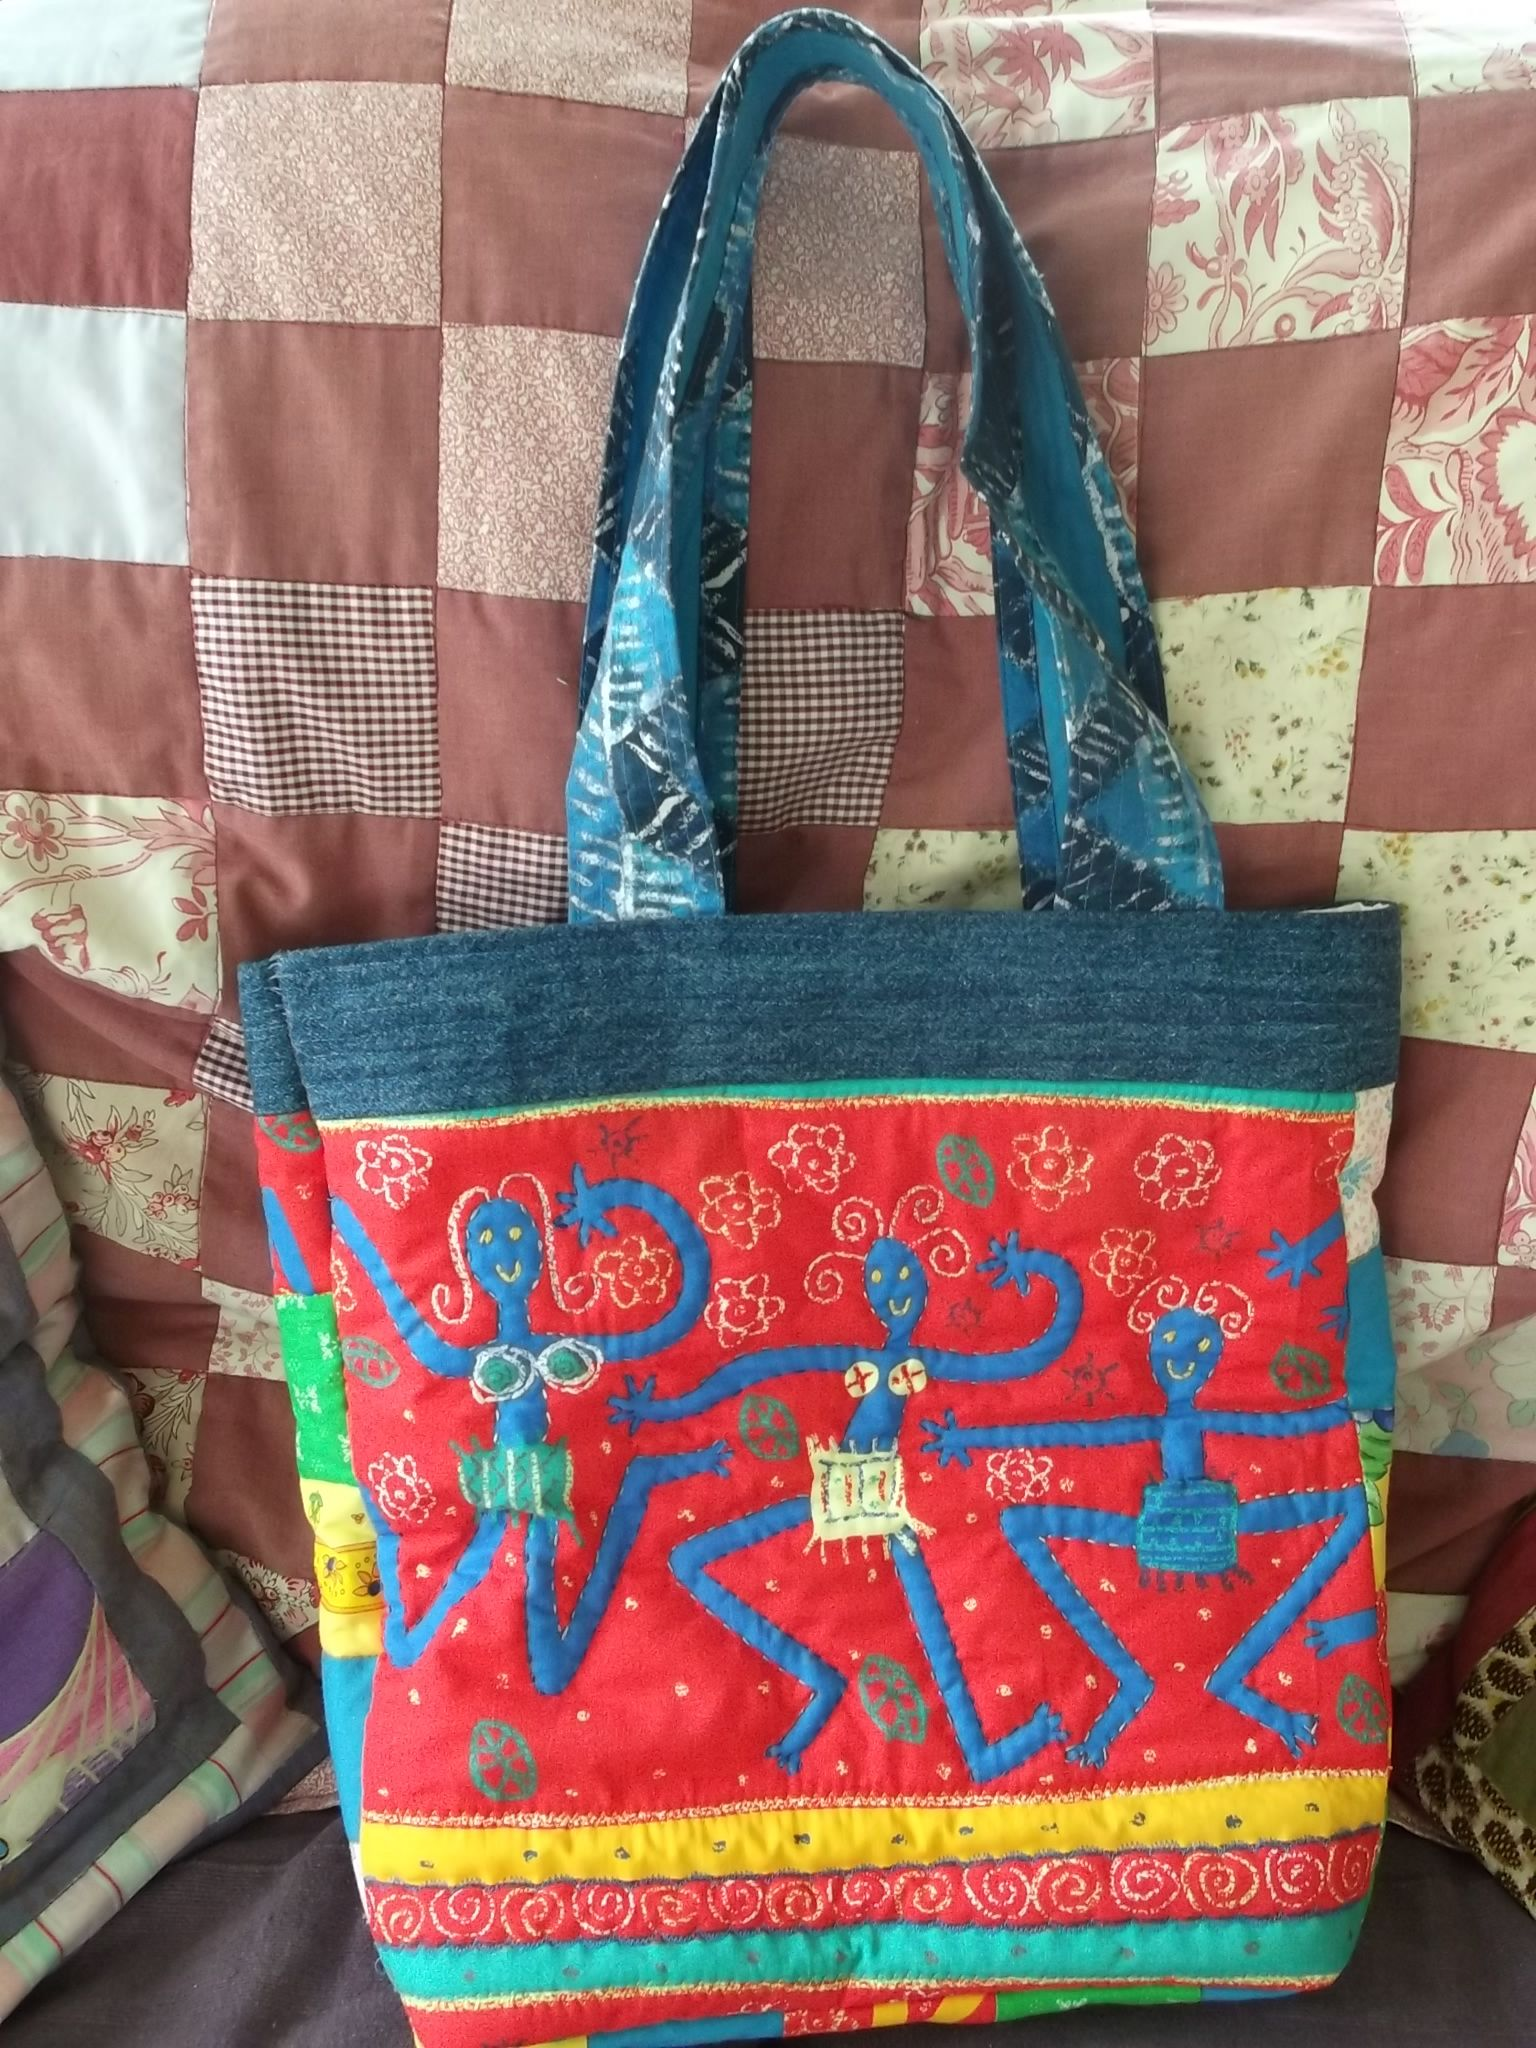 'Crazy Peeps' Tote bag, lined with inside pocket.